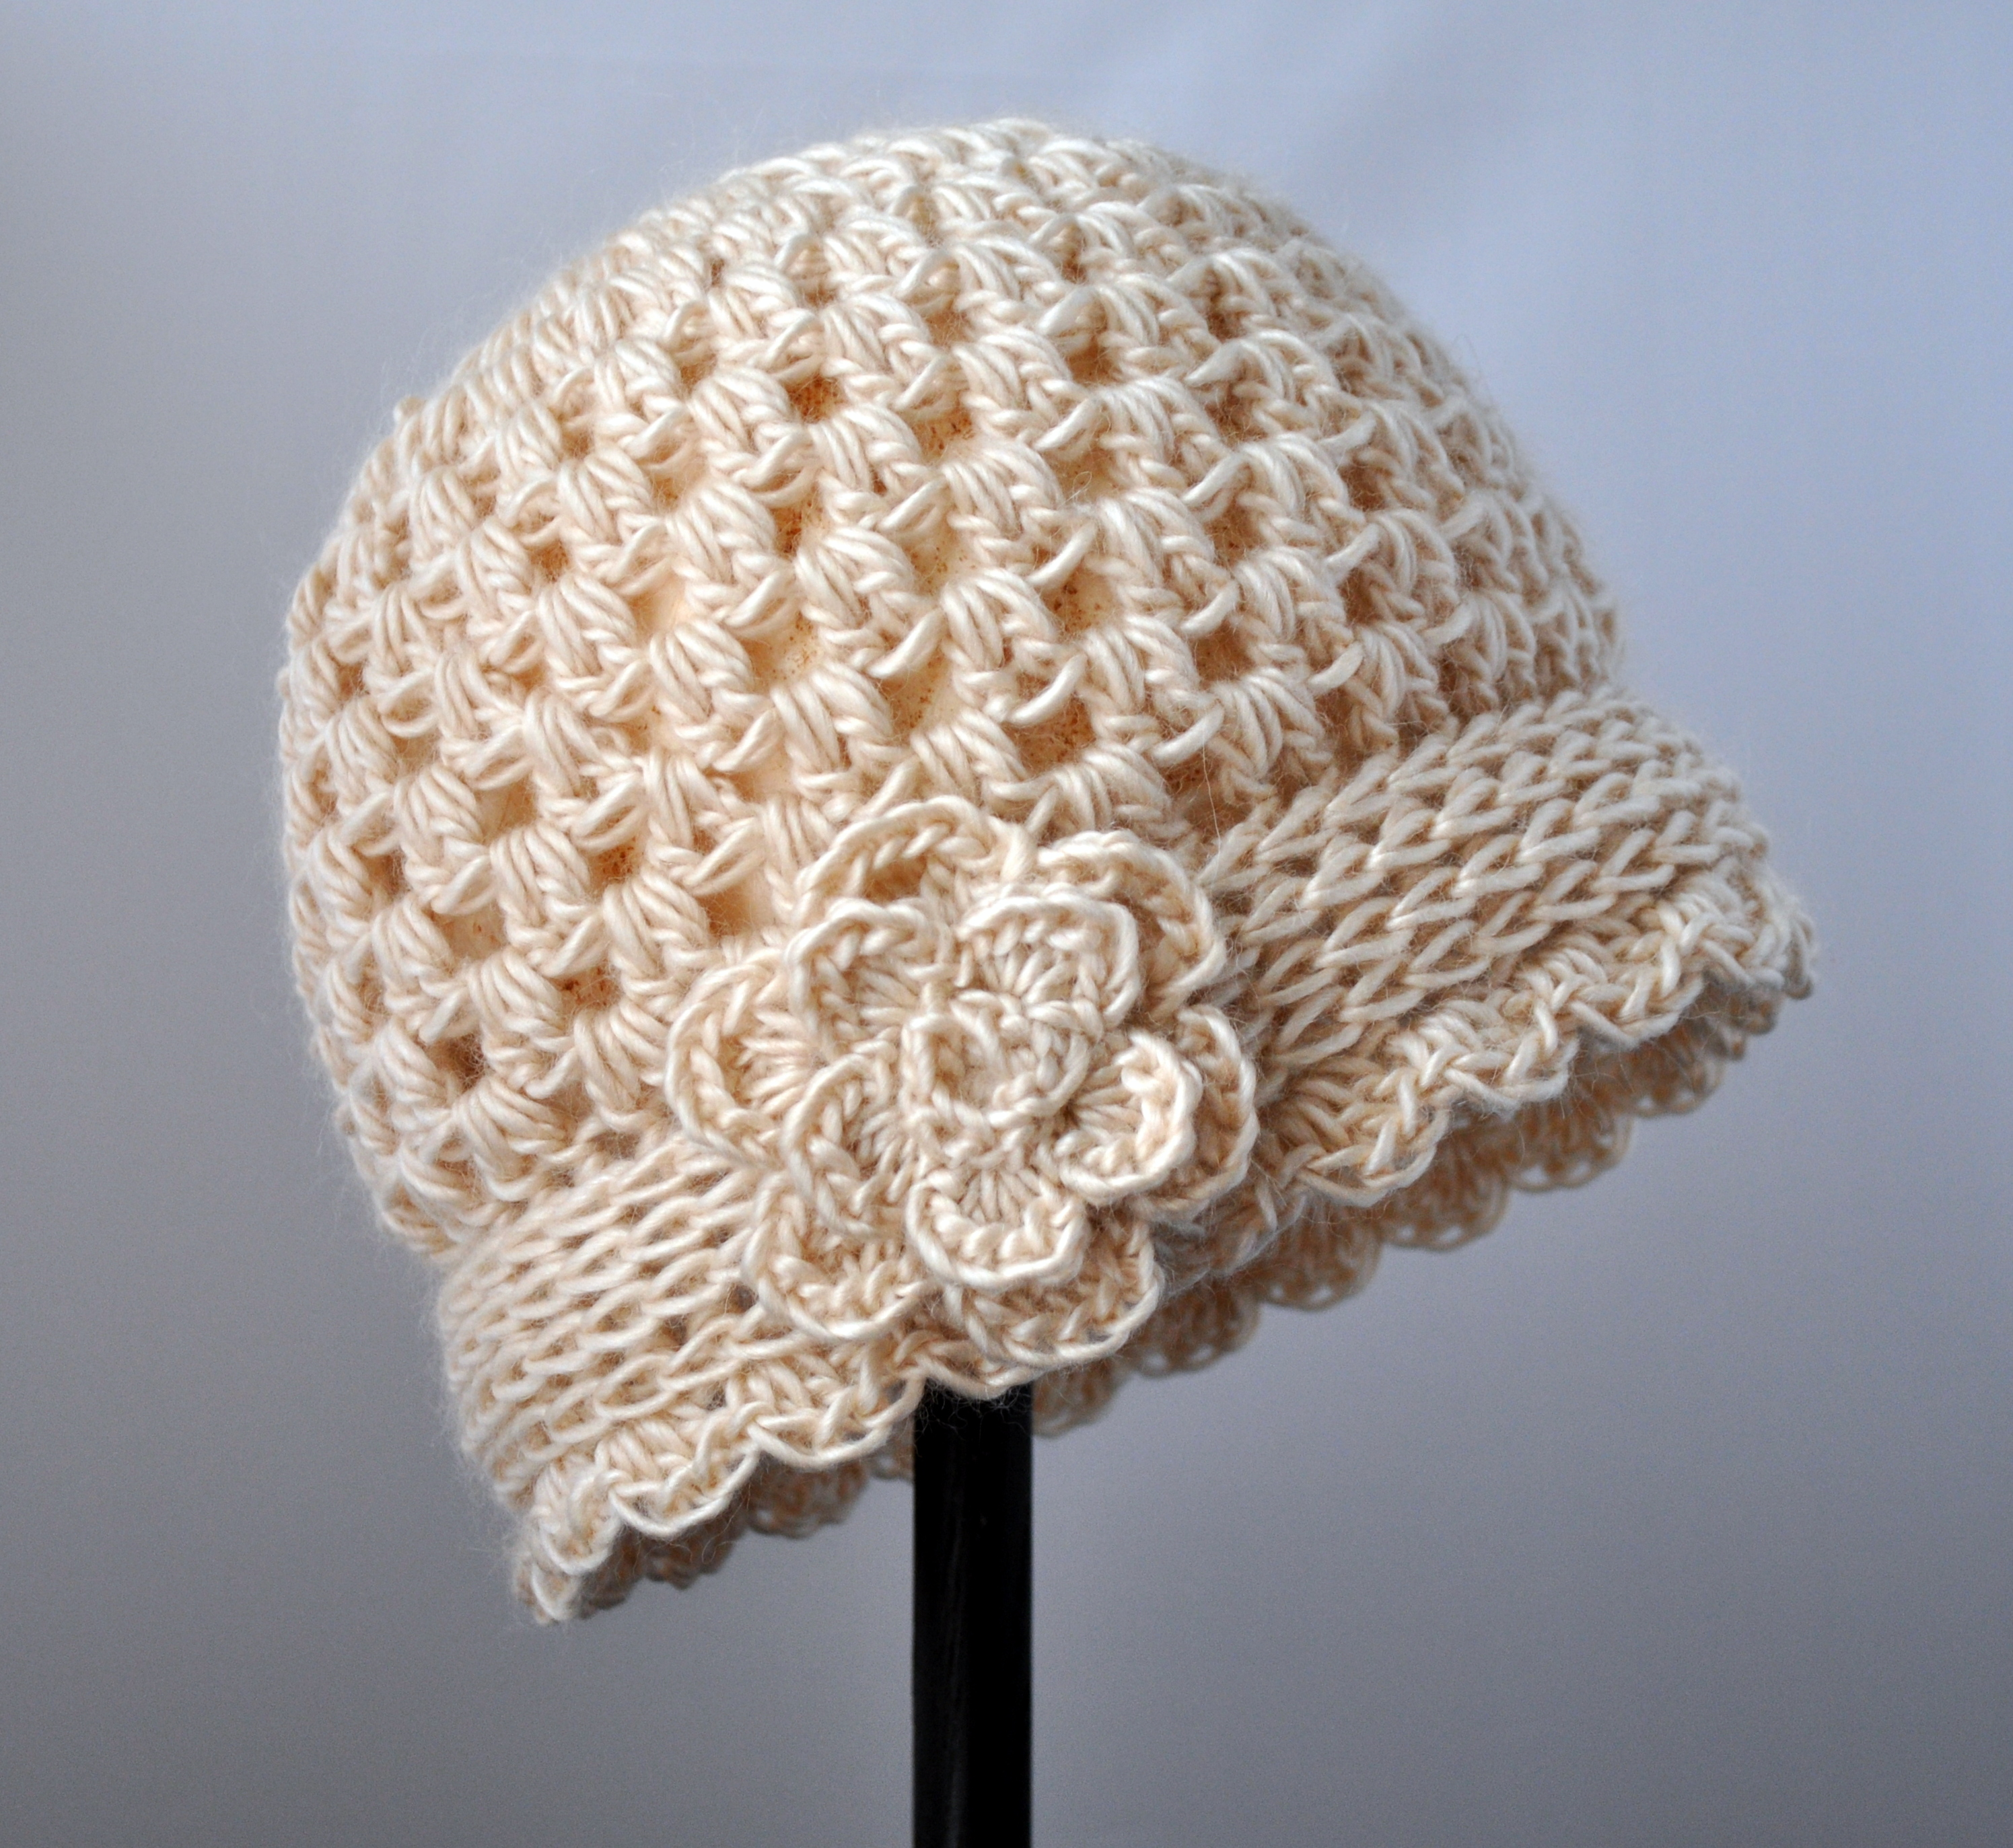 Crochet Stitches Vintage : Crochet Vintage Cloche - Updated Sizes!